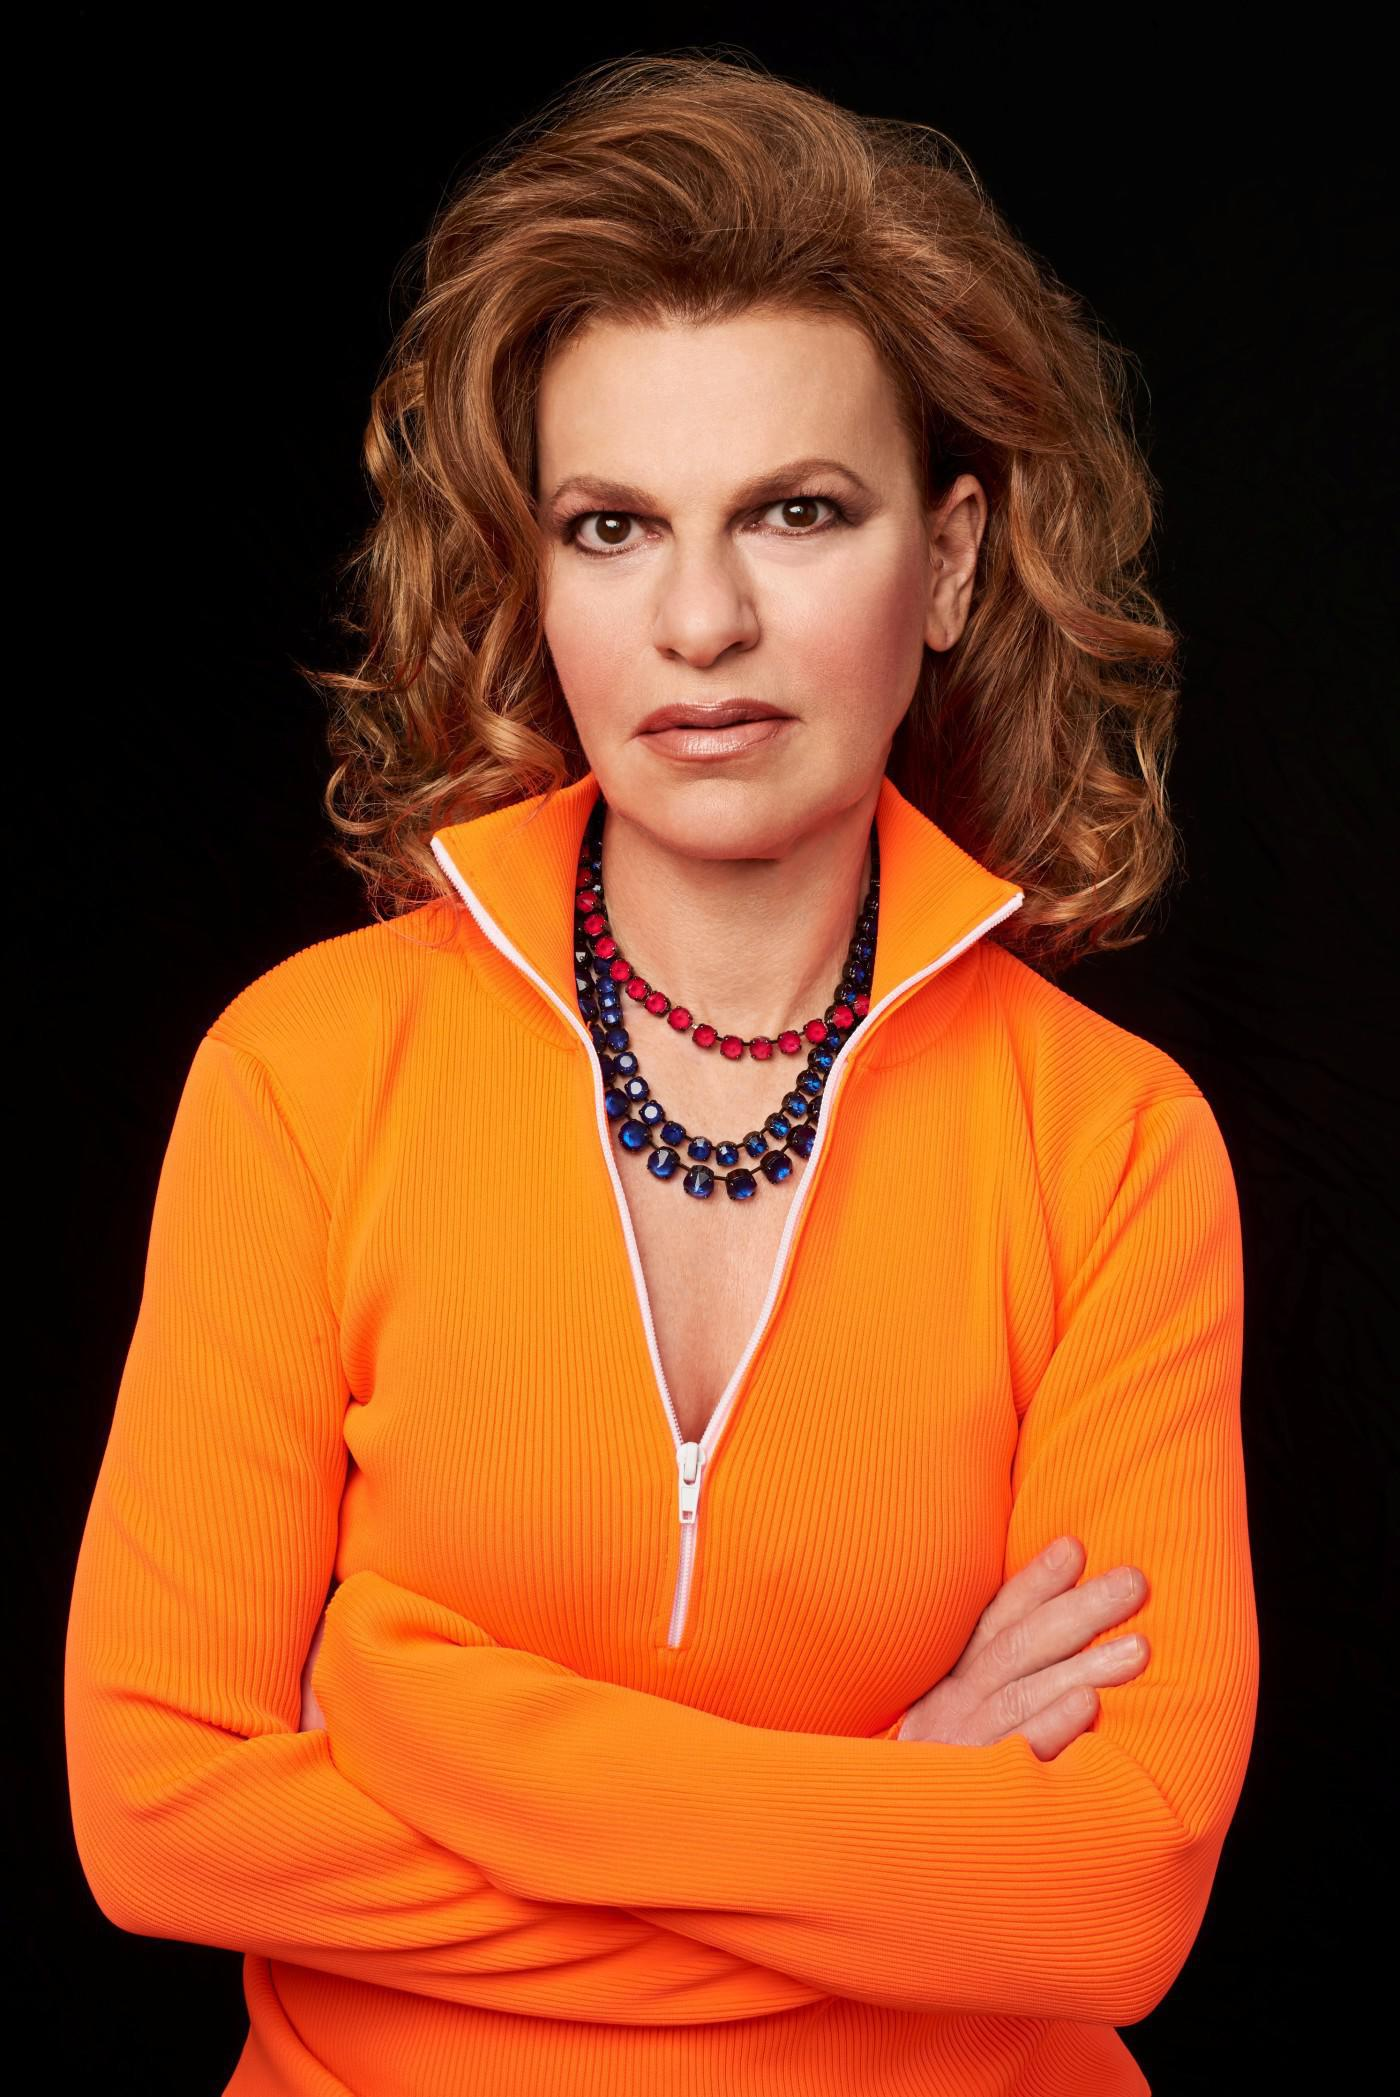 Sandra Bernhard on Her Illustrious Career, Unwavering Self Confidence, and the Upcoming Election